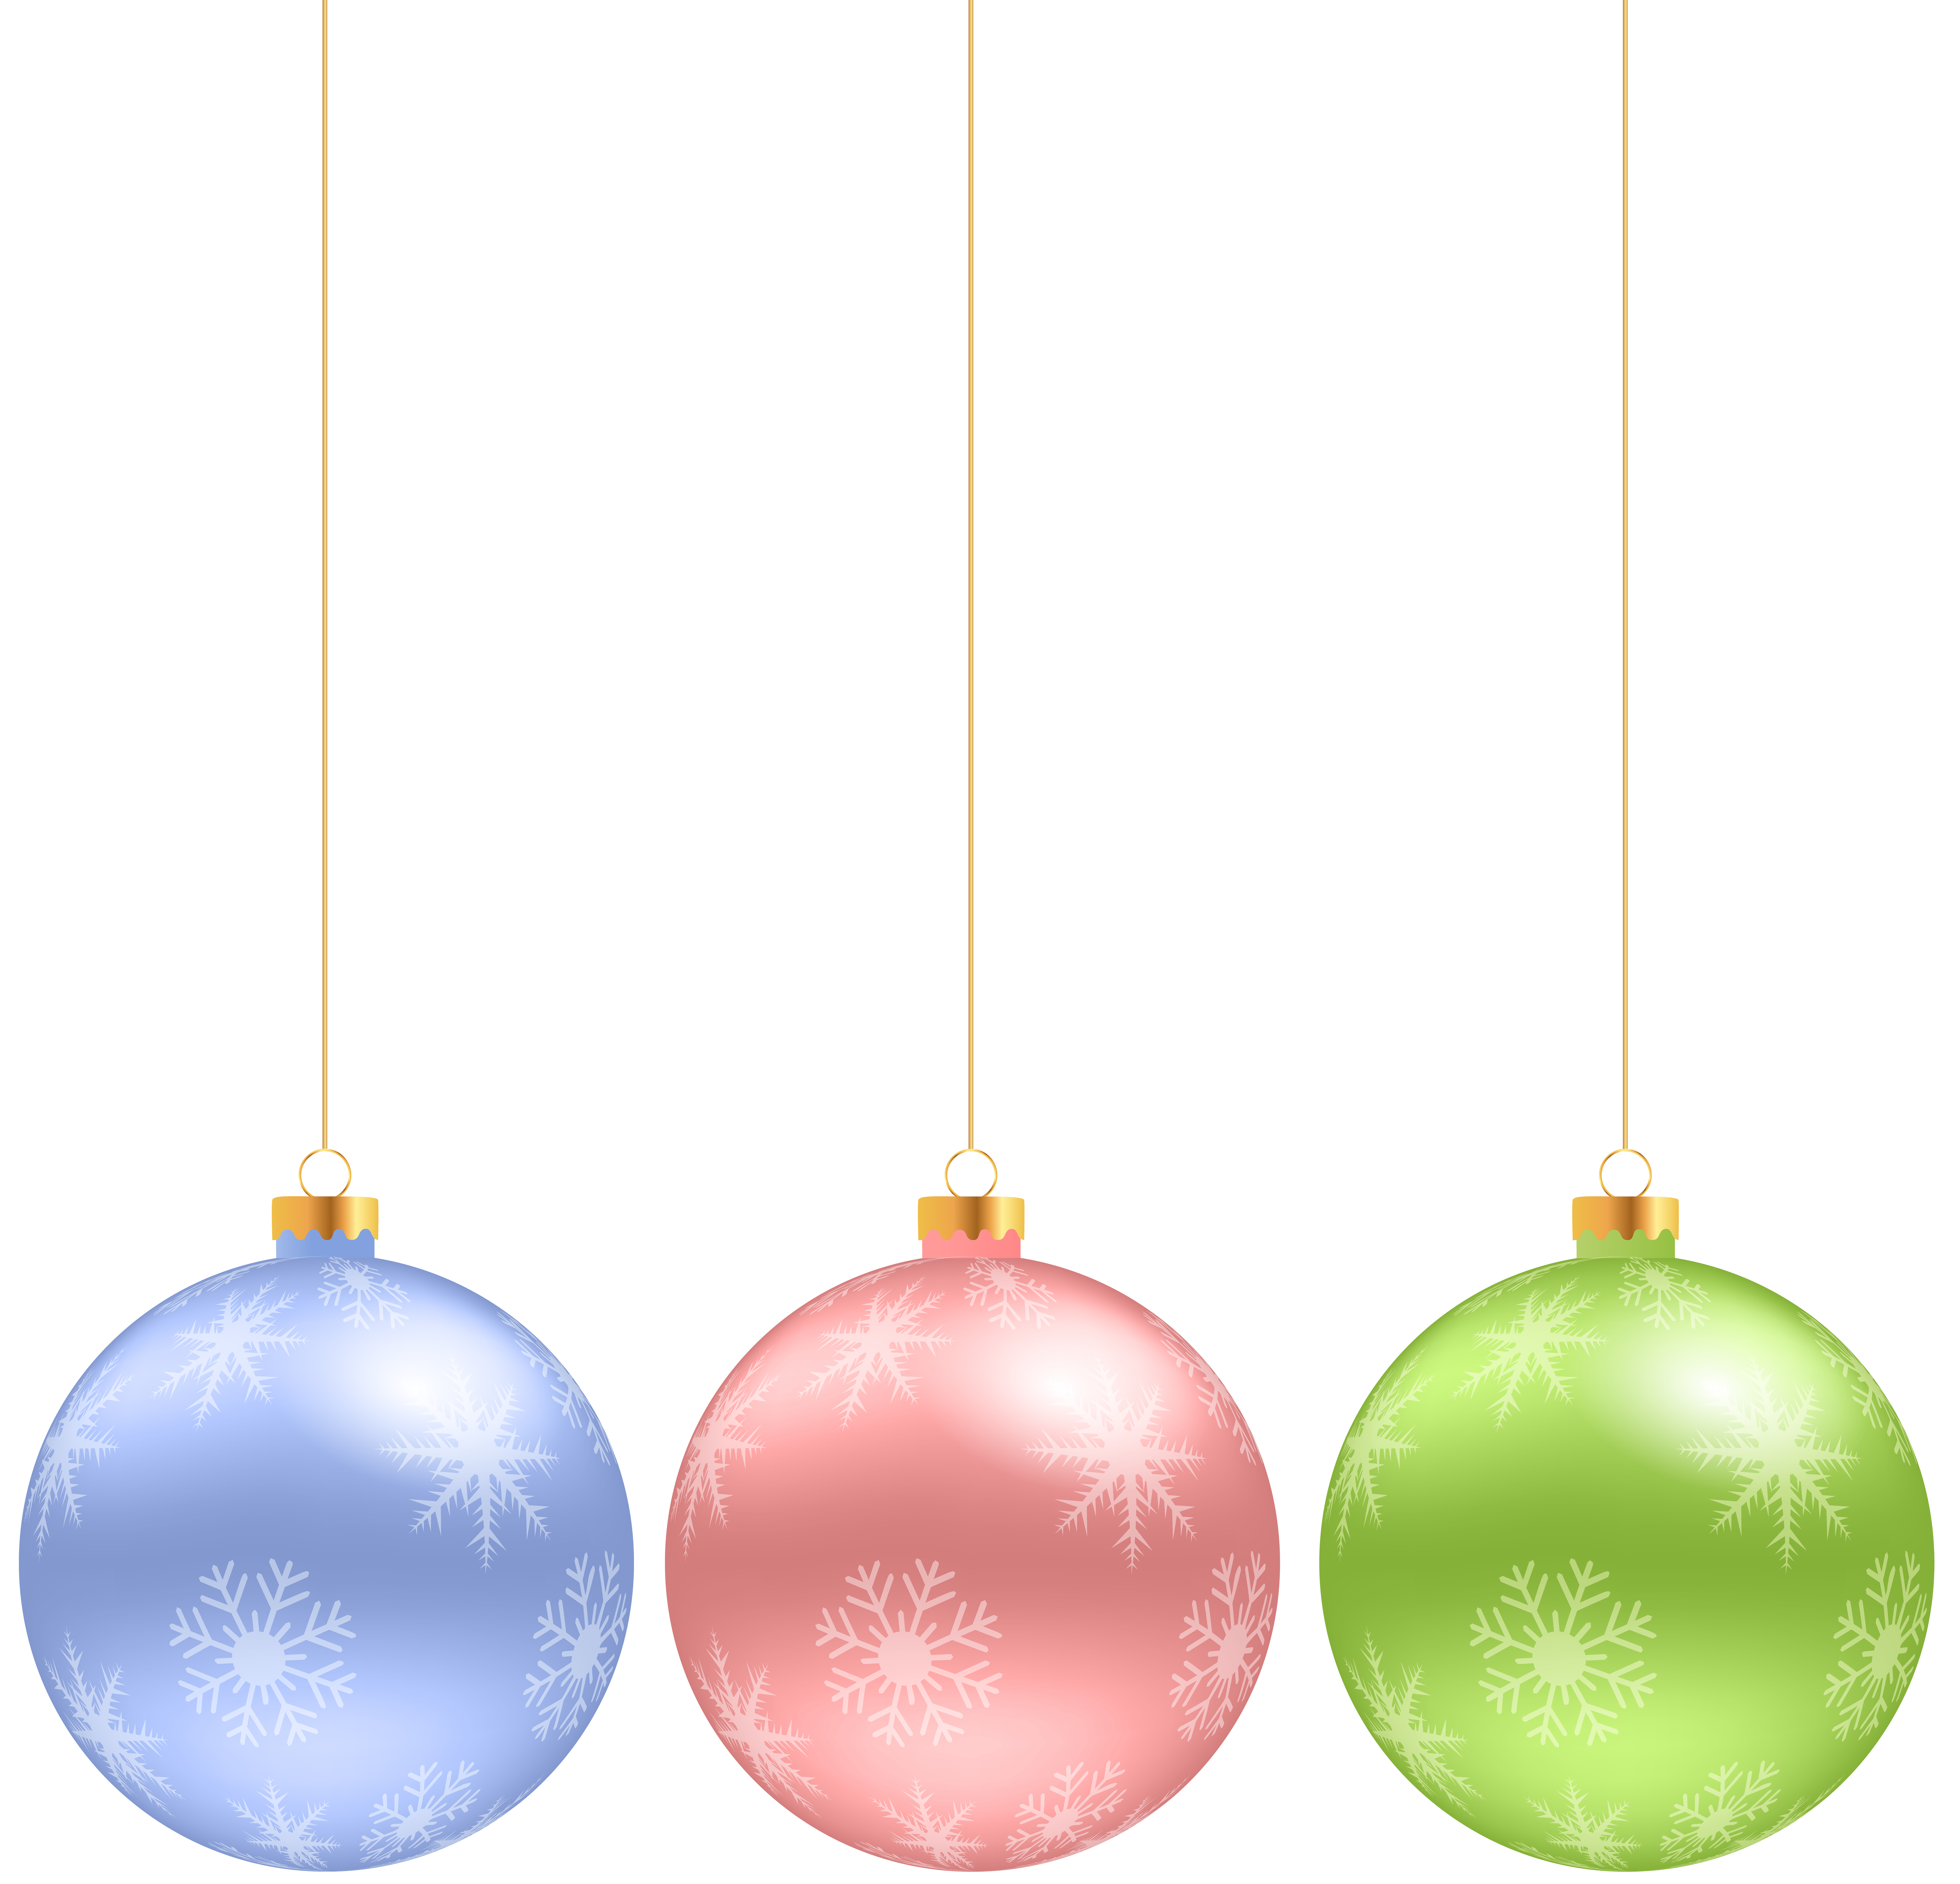 Hanging christmas ornament clipart graphic free library Christmas Hanging Ornaments Clip Art Image | Gallery Yopriceville ... graphic free library